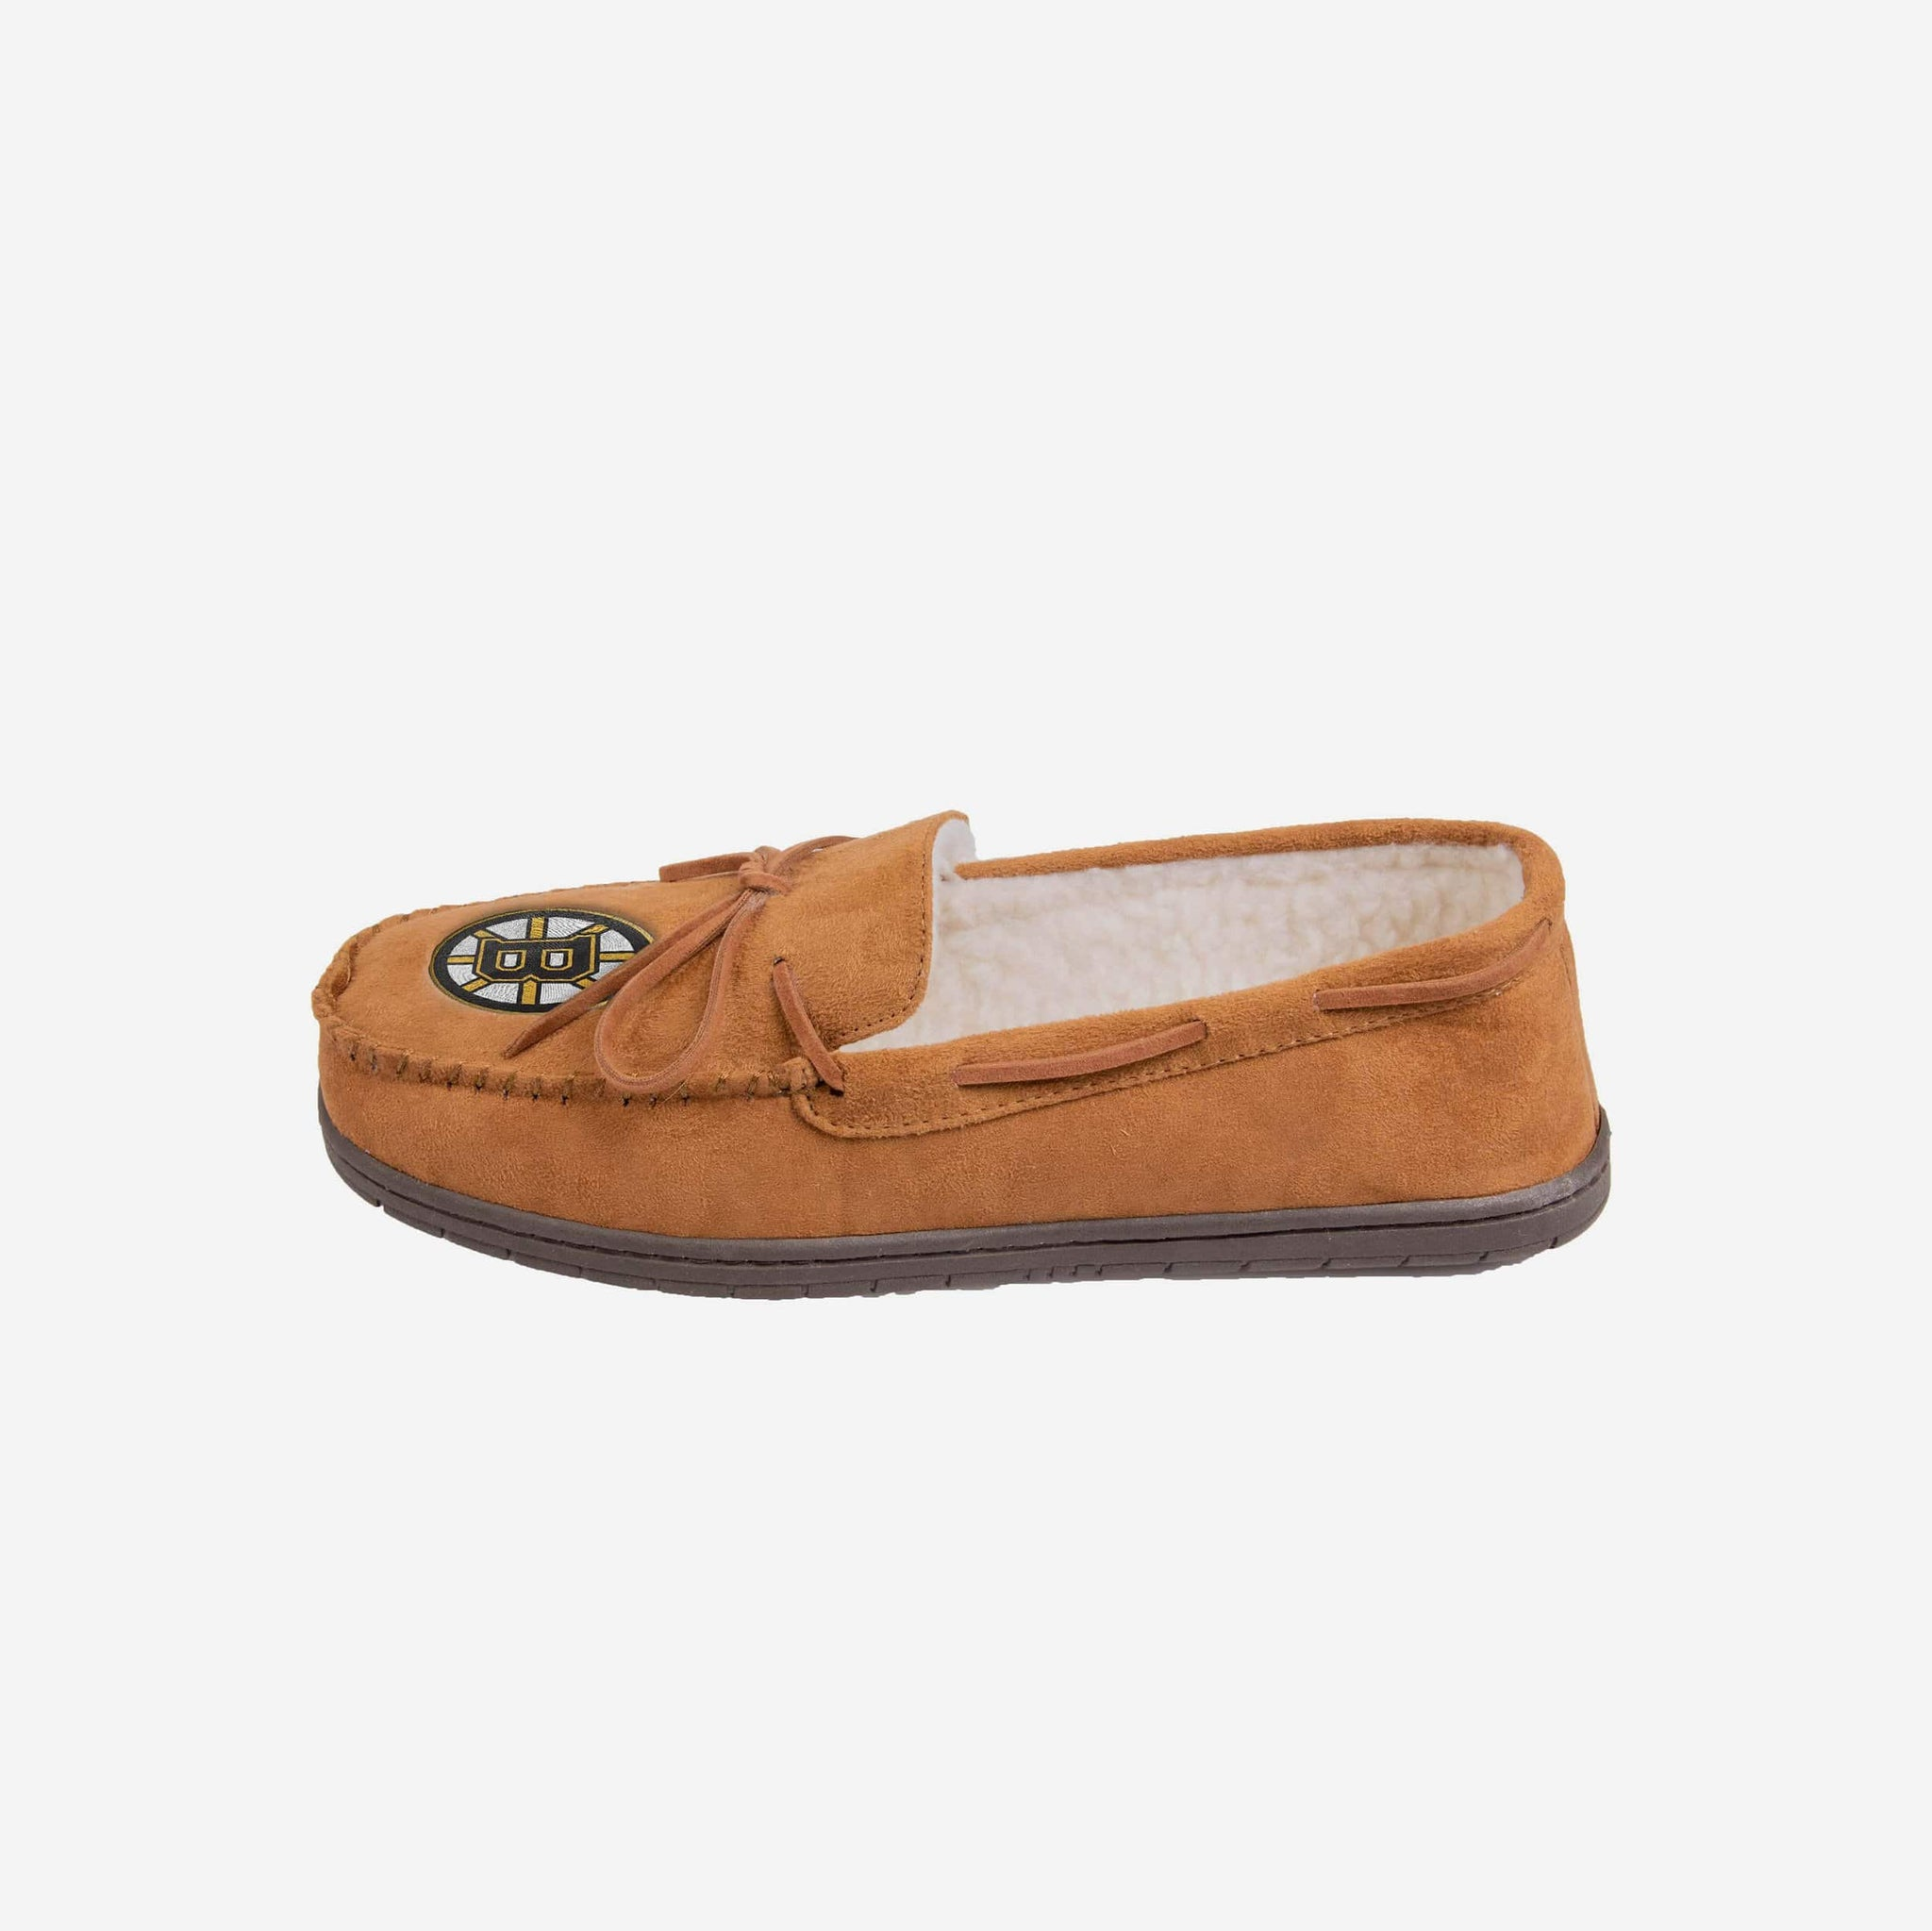 Boston Bruins Moccasin Slipper